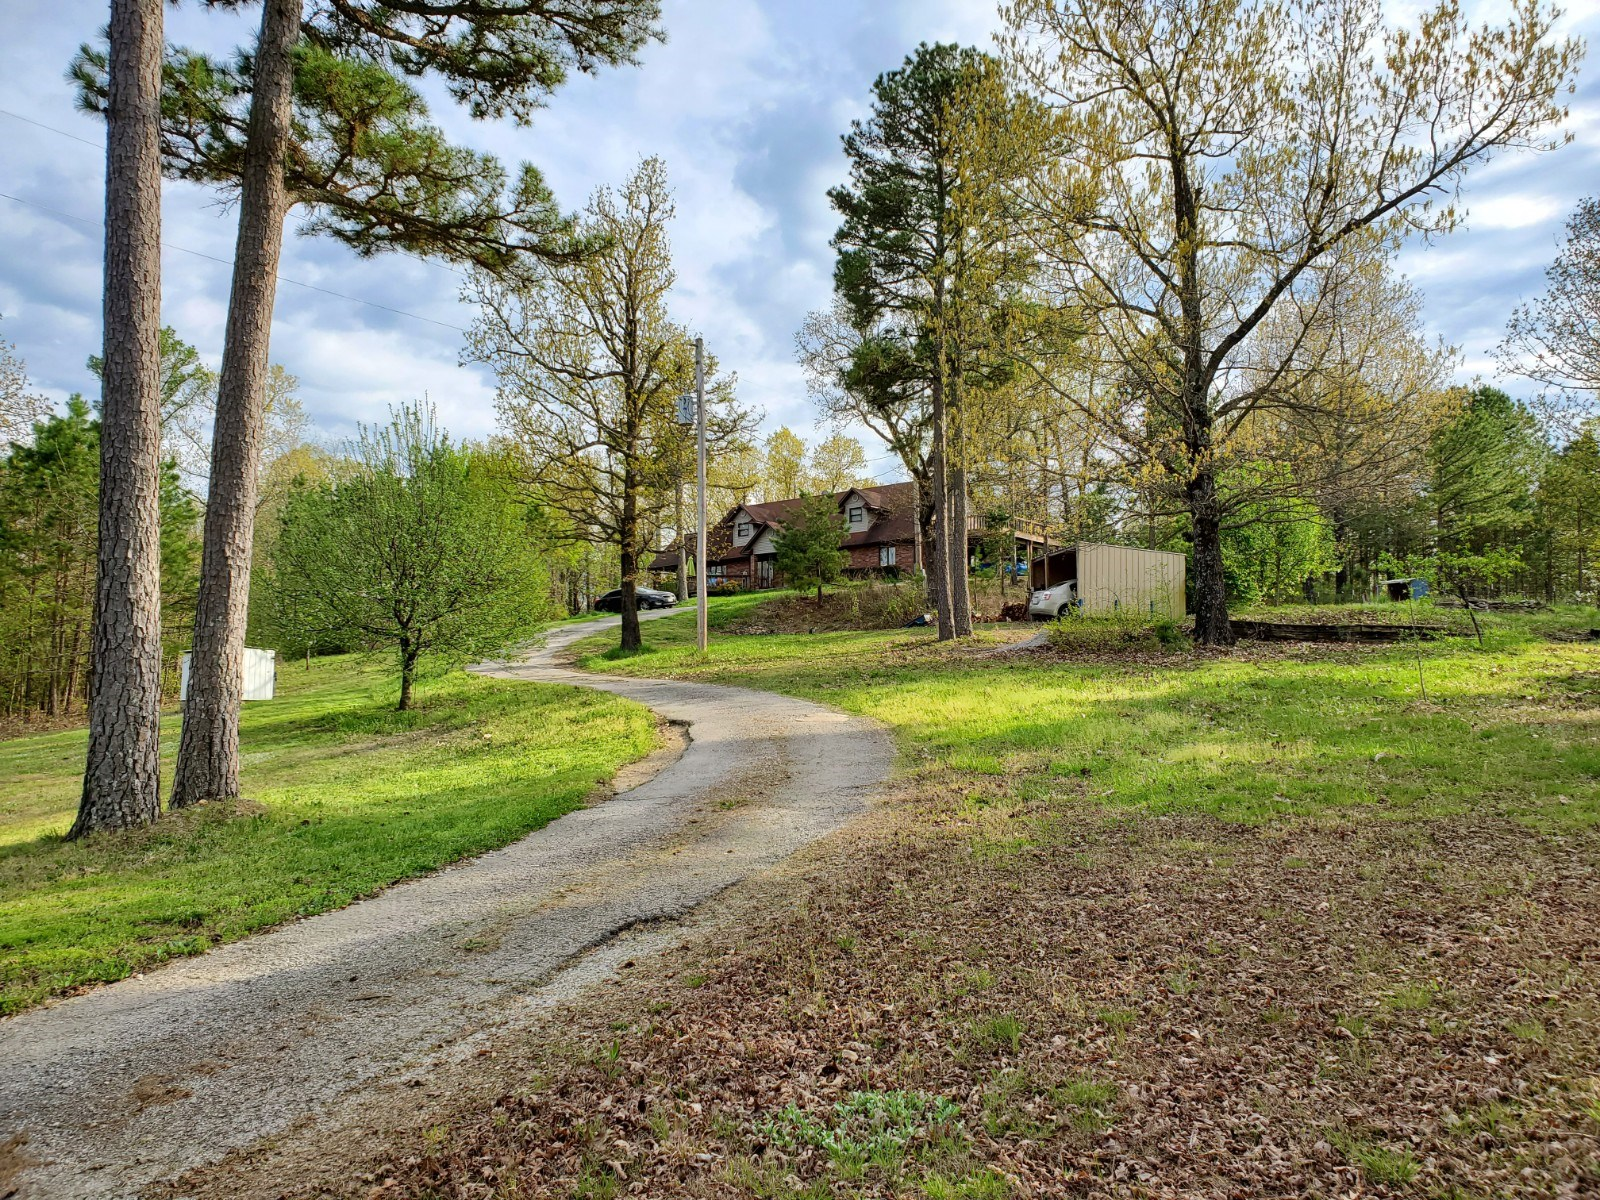 Country Home for Sale in the Southern Missouri Ozarks